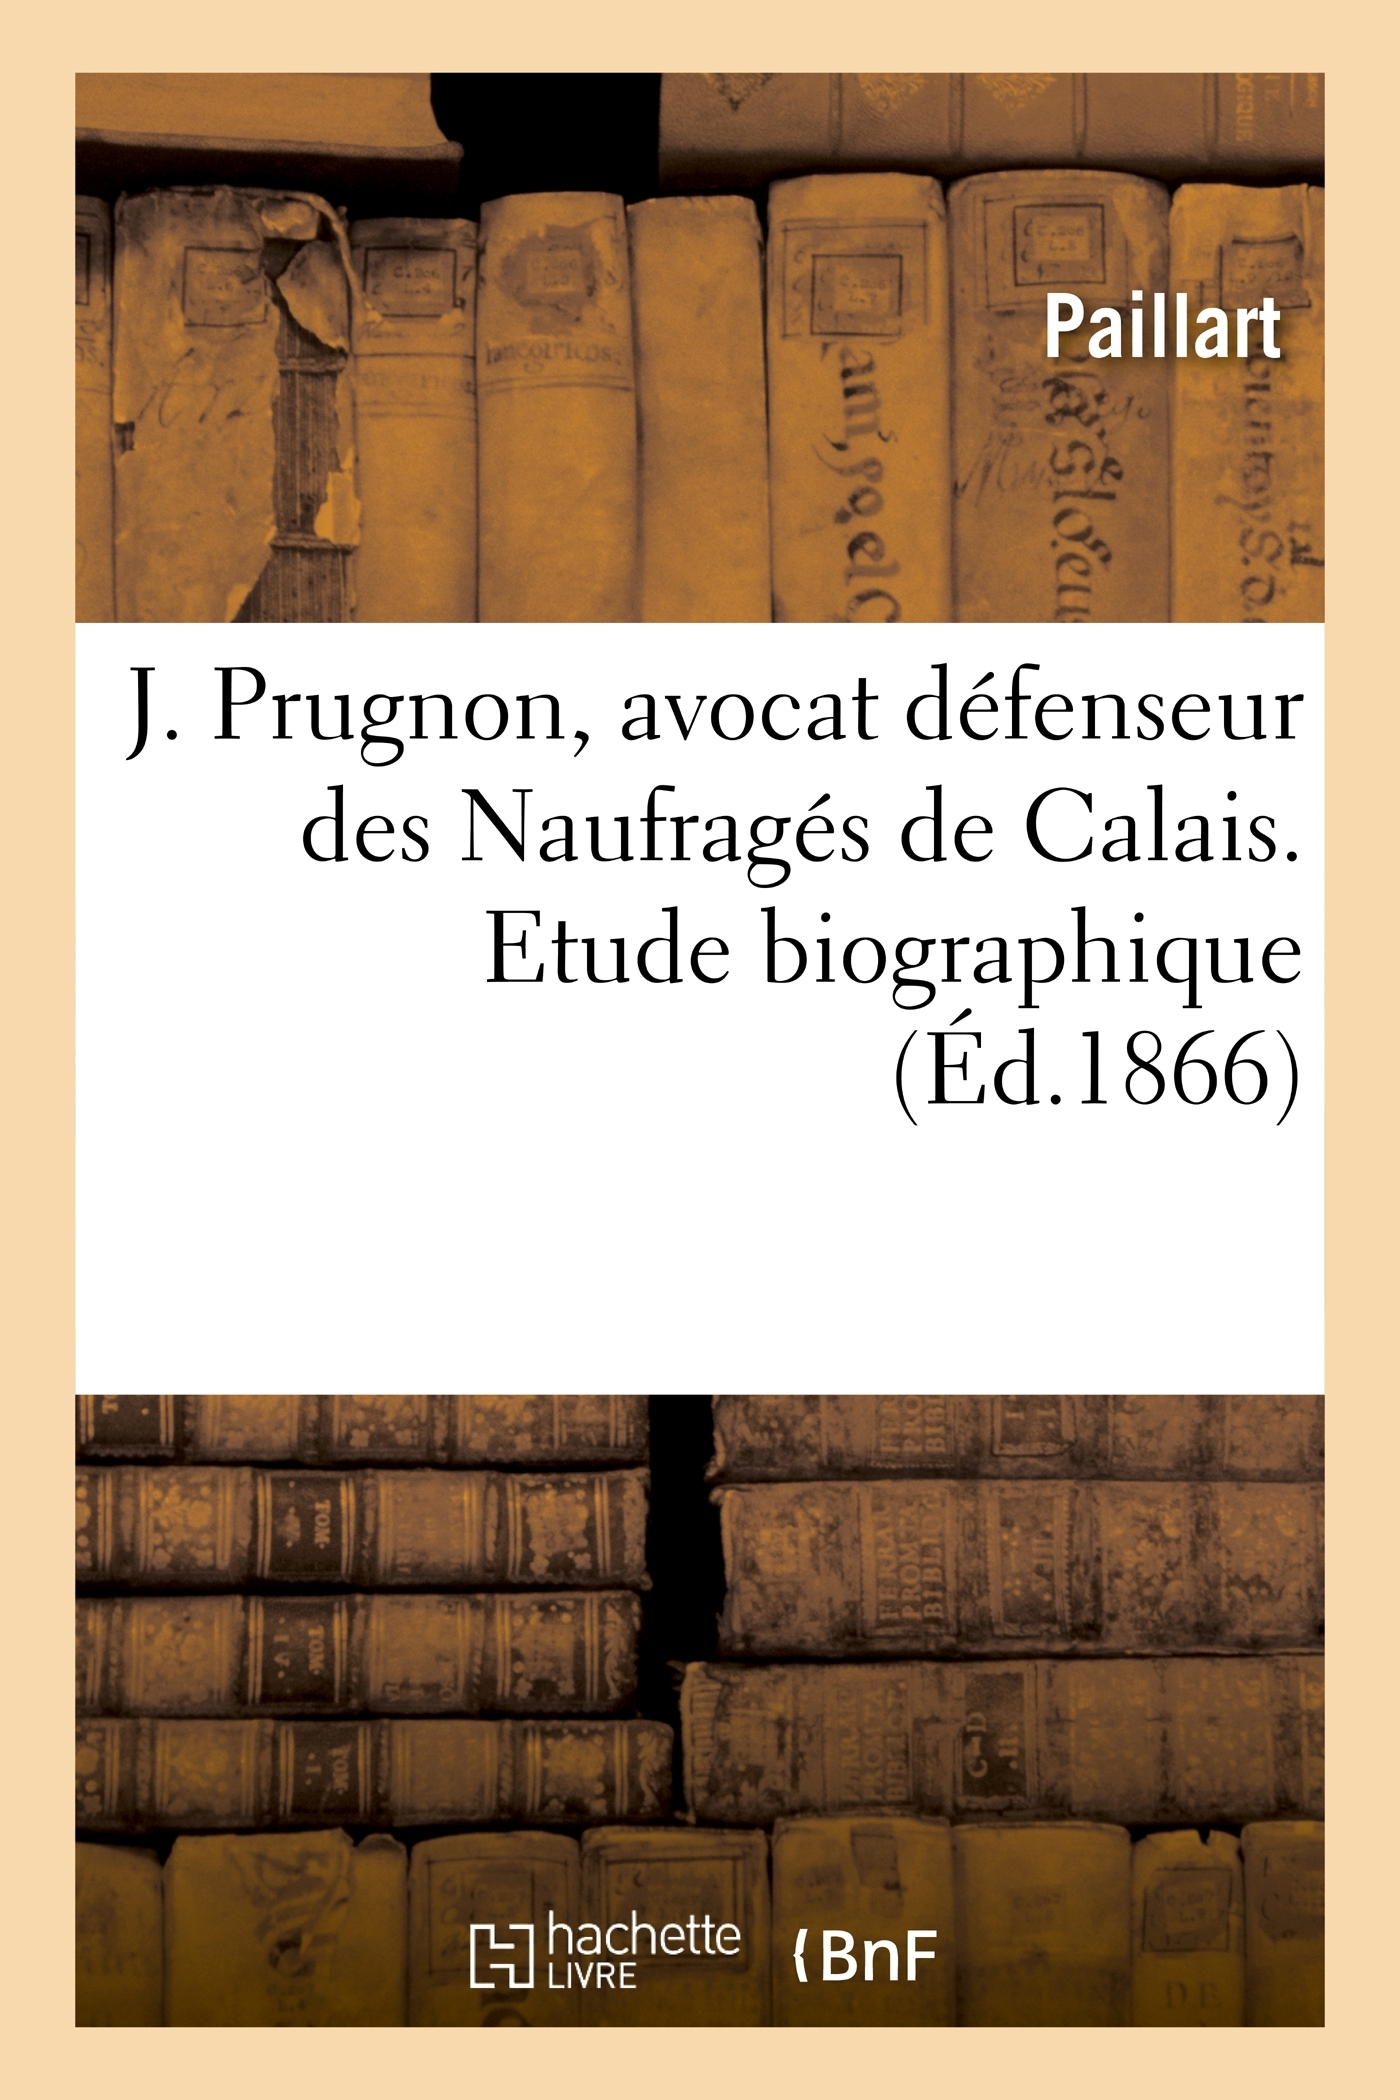 J. PRUGNON, AVOCAT DEFENSEUR DES NAUFRAGES DE CALAIS. ETUDE BIOGRAPHIQUE